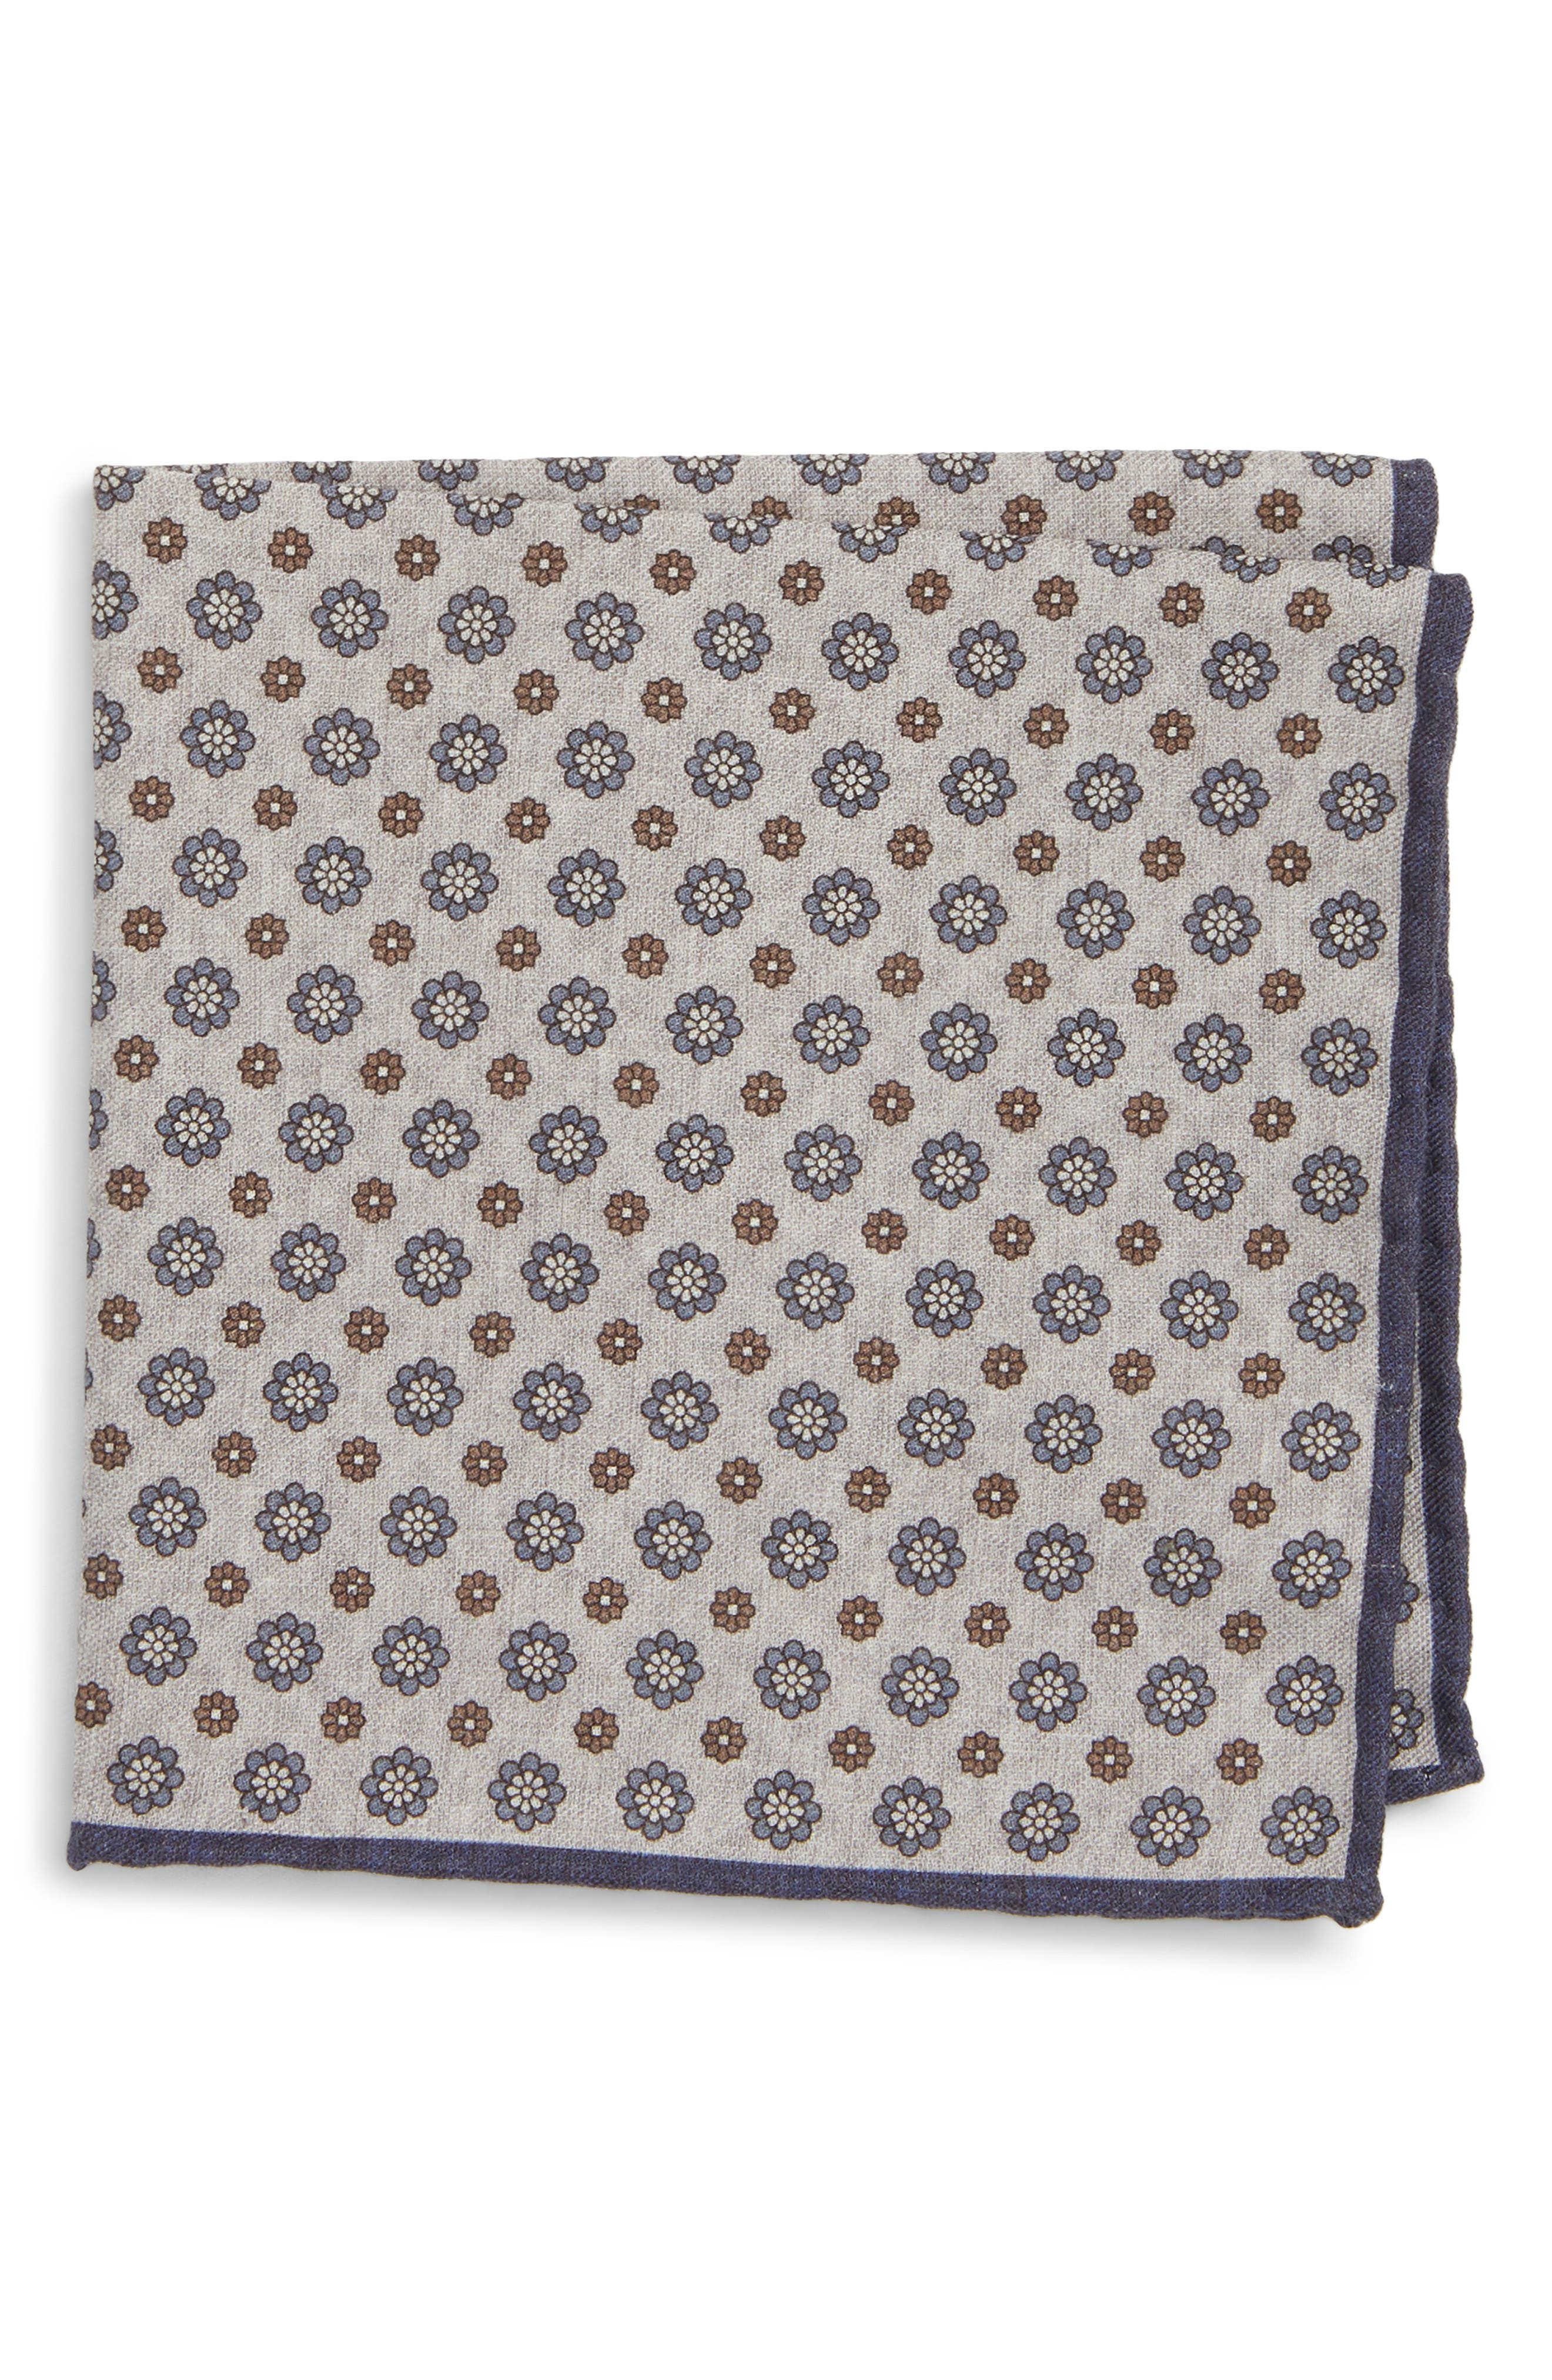 Medallion Wool & Cotton Pocket Square,                             Main thumbnail 1, color,                             GREY/ BLUE